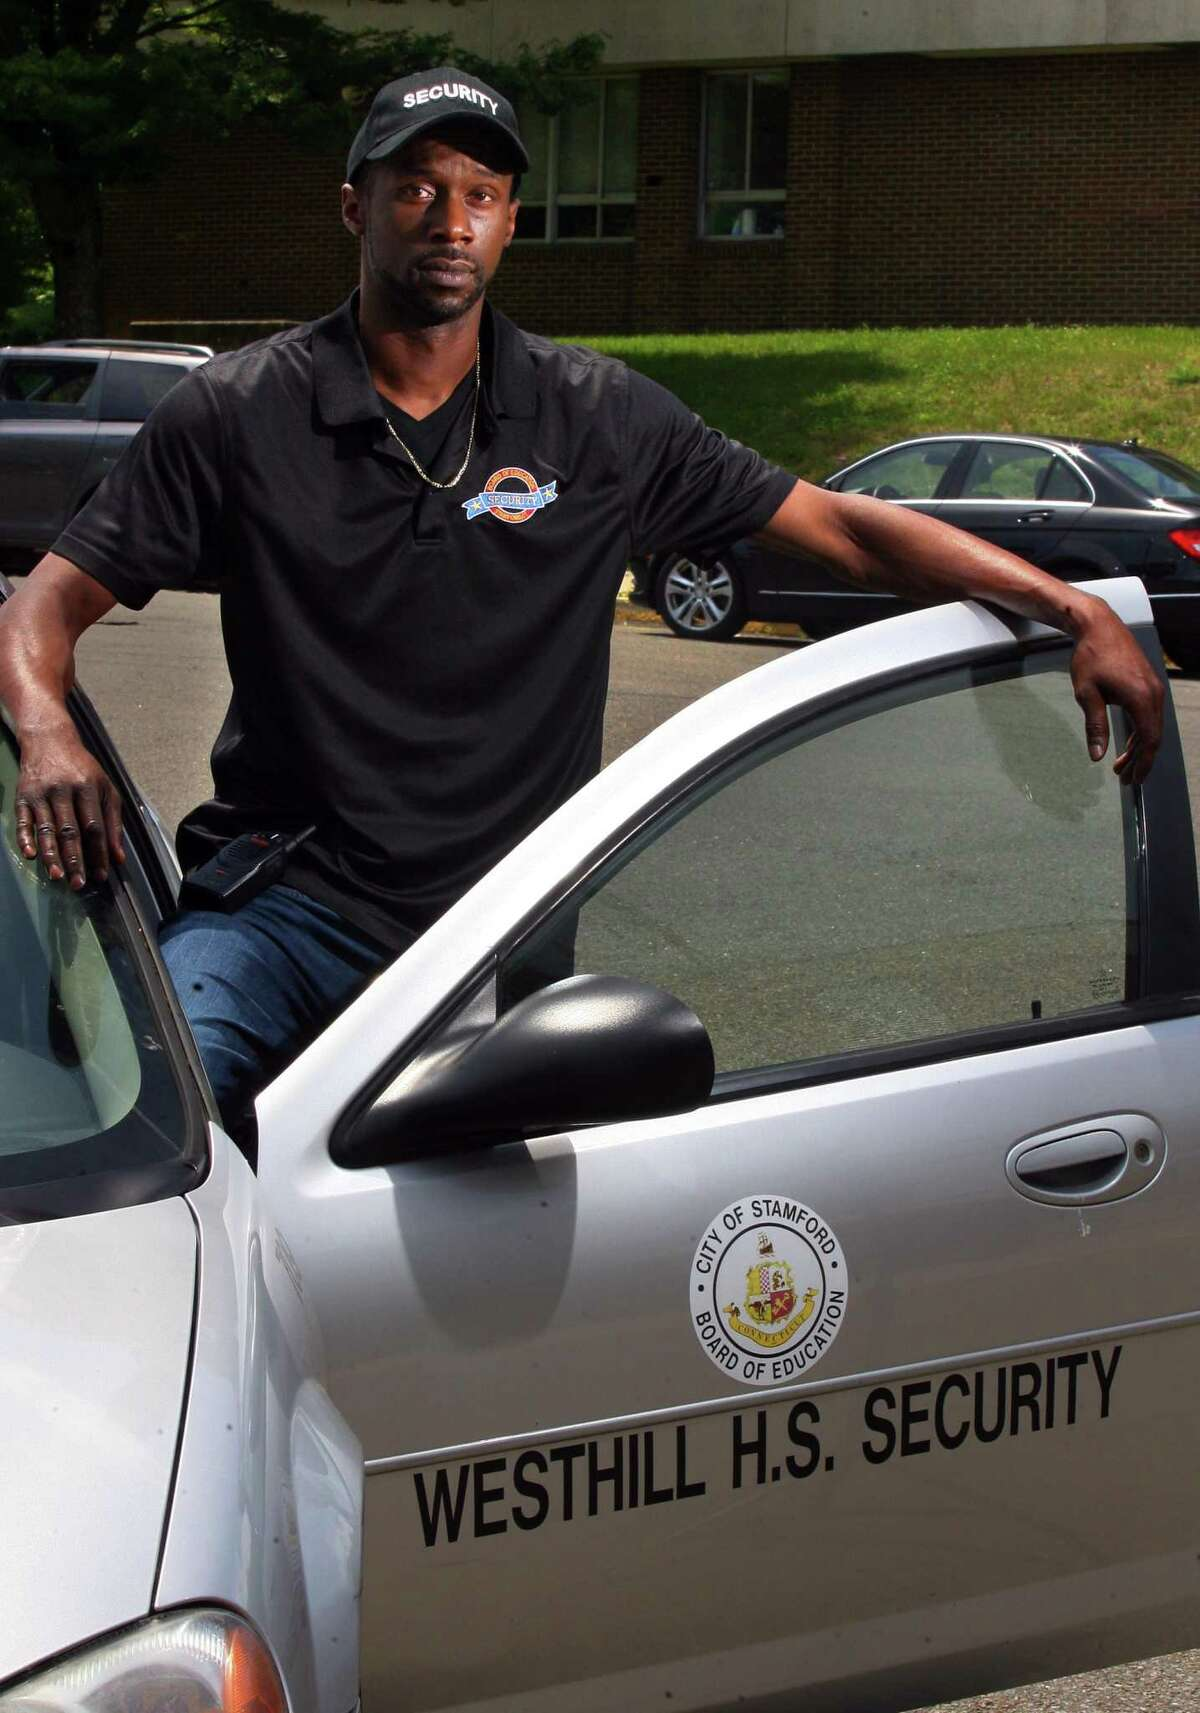 Westhill High School security guard Keith Rosedom, who recently stopped a car from rolling over a visitor, poses at the school in Stamford, Conn., on Friday June 11, 2021.